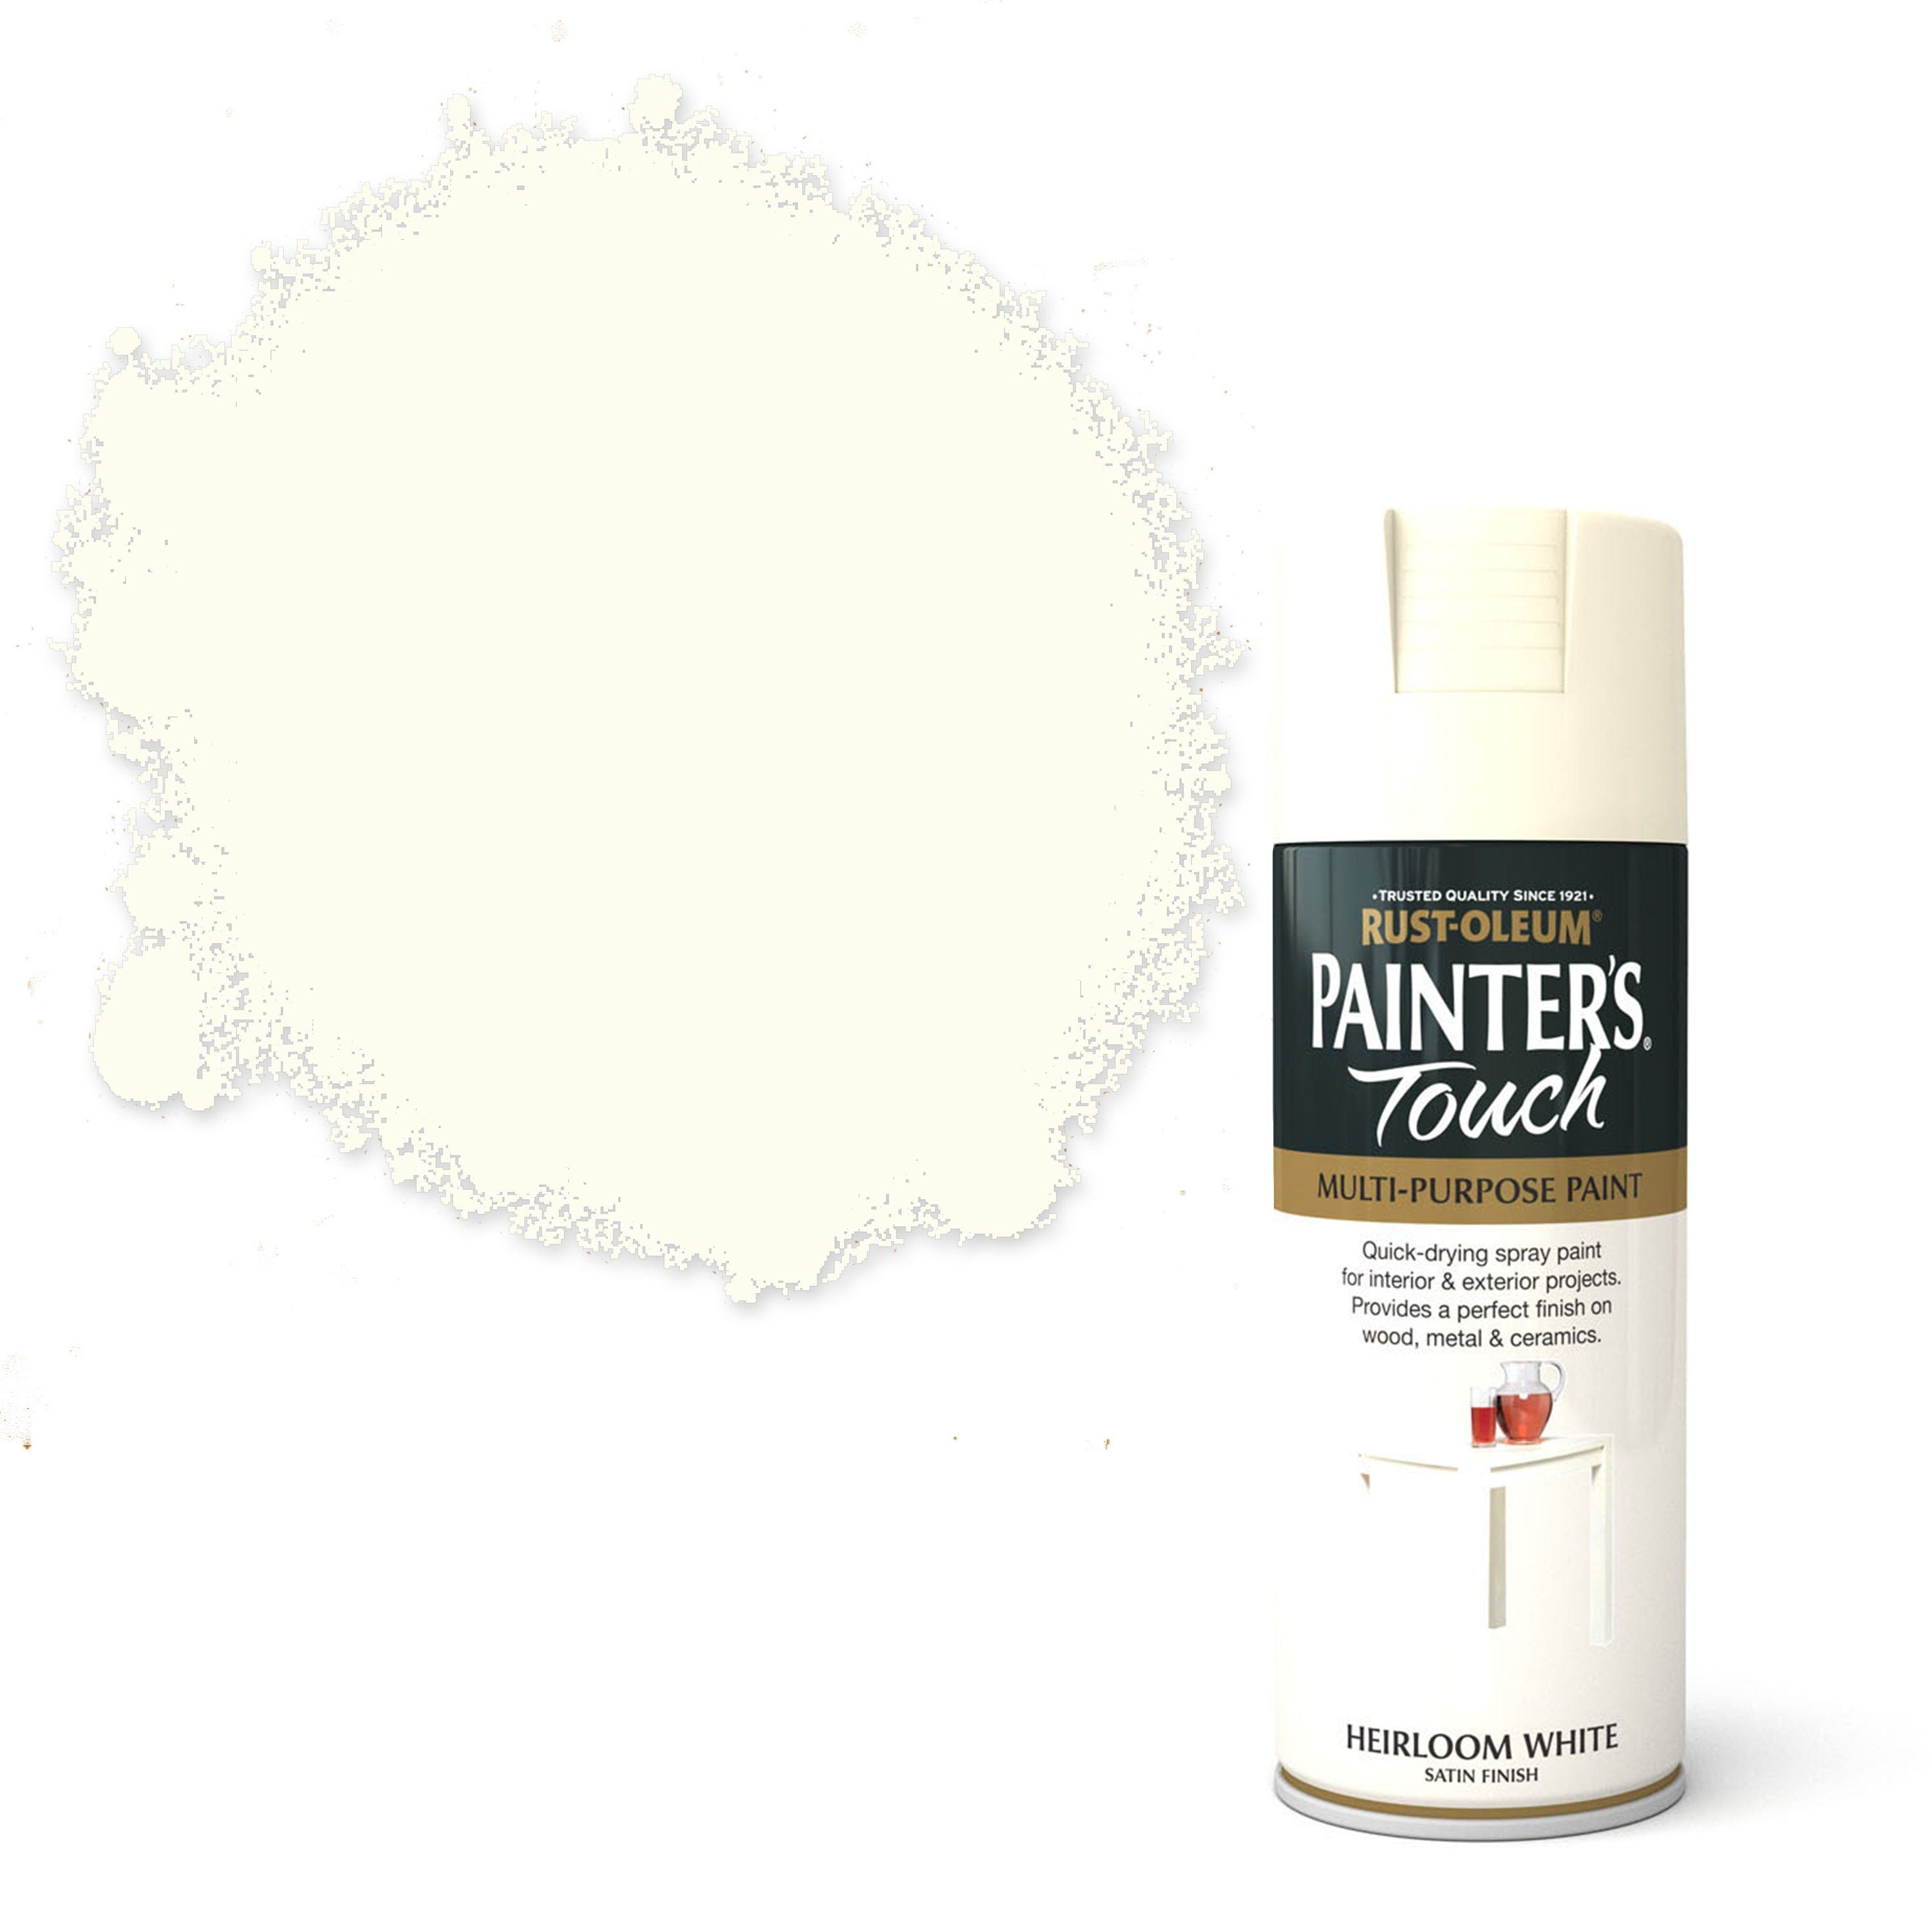 Rust-oleum Painter's Touch Heirloom White Satin Decorative Spray Paint 400 Ml